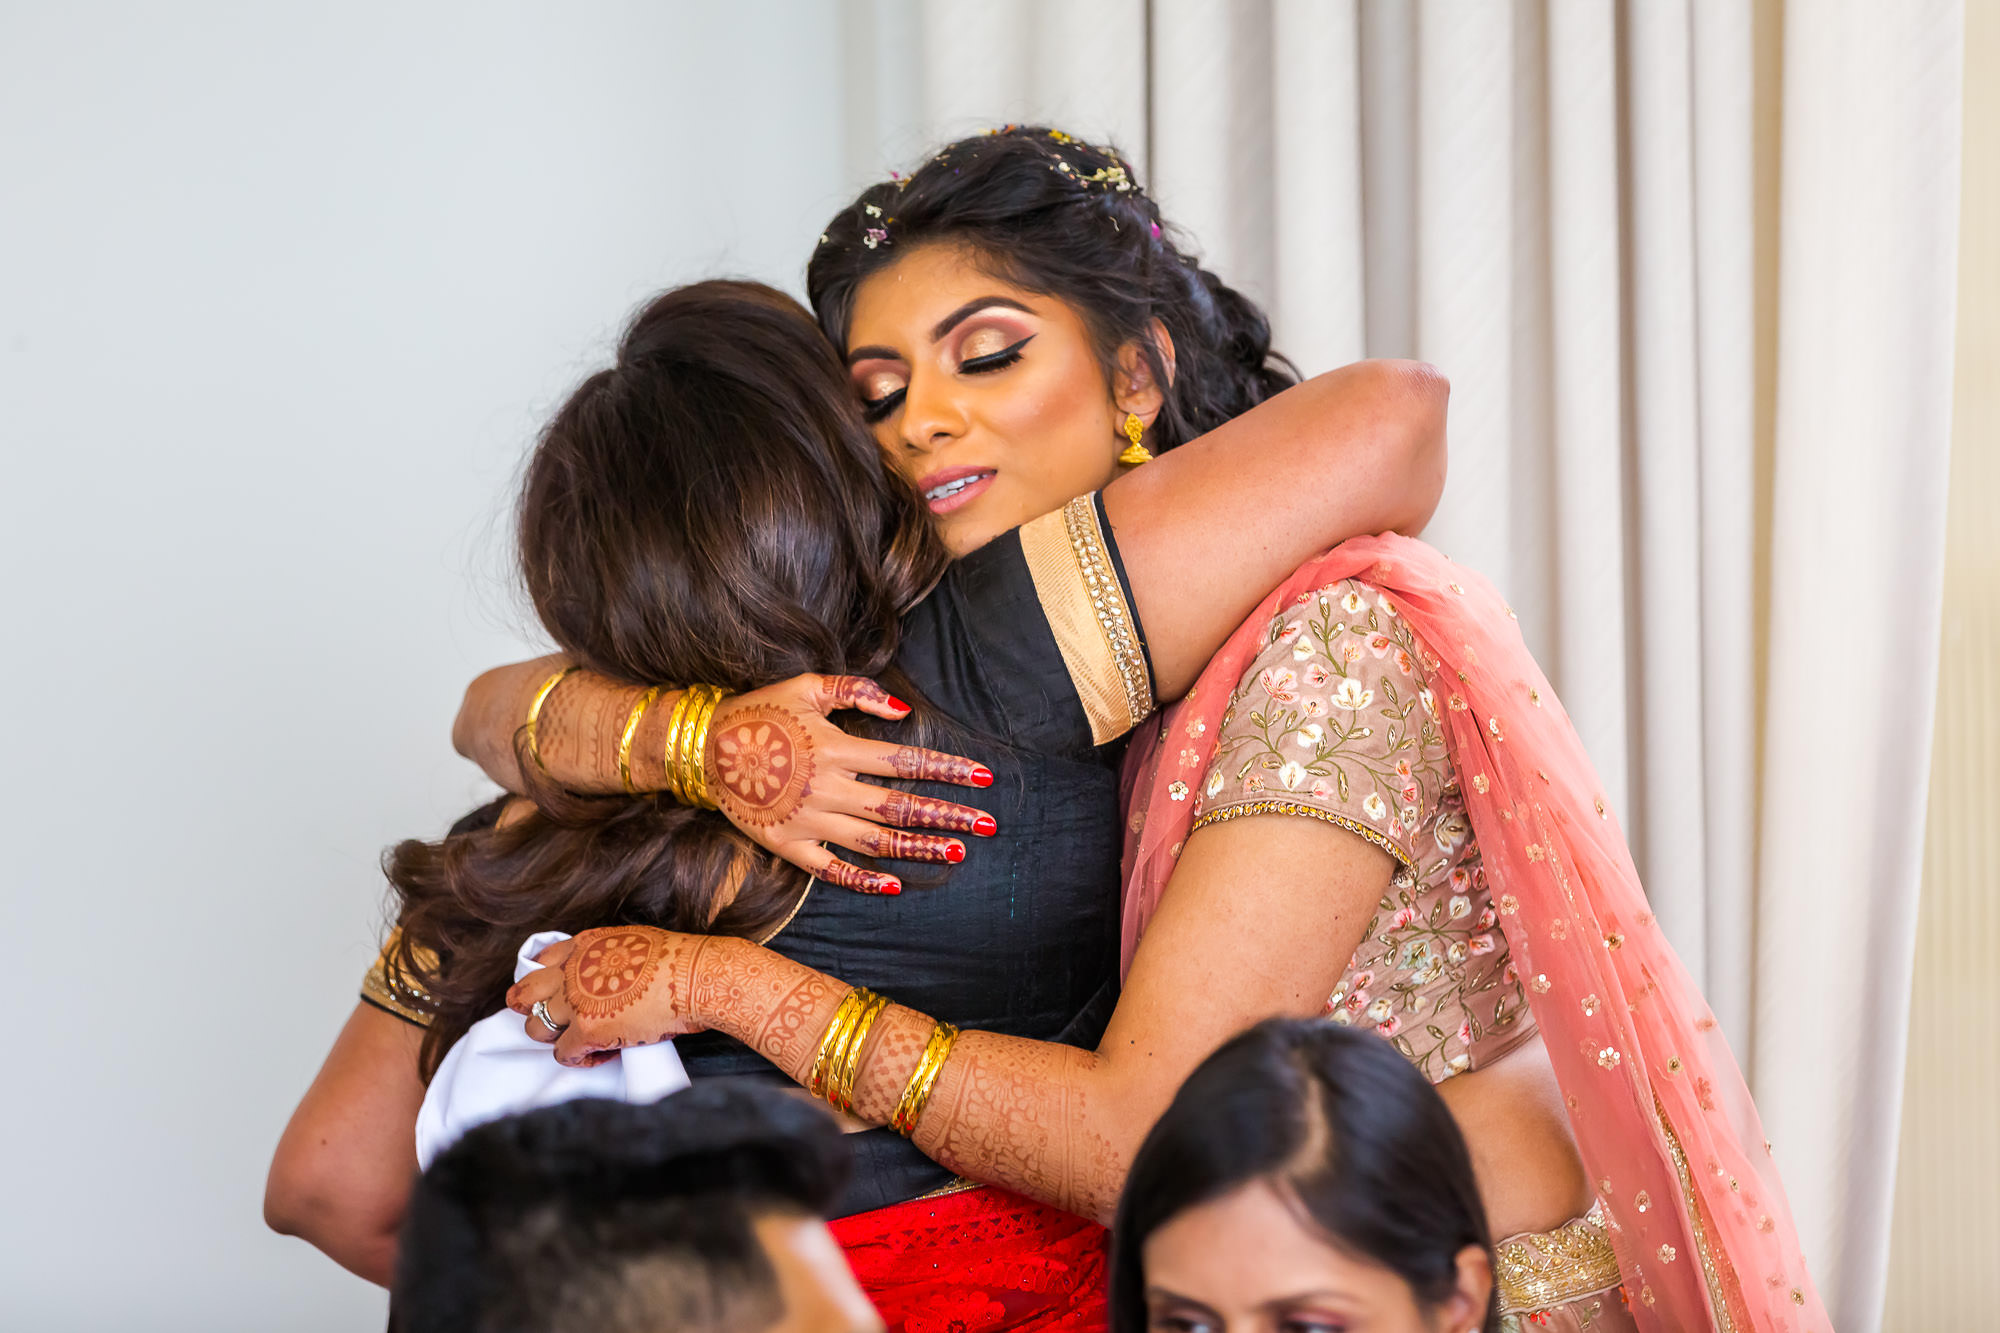 asian-wedding-hindu-tamil-photographer-heythorpe-oxford-0269.jpg